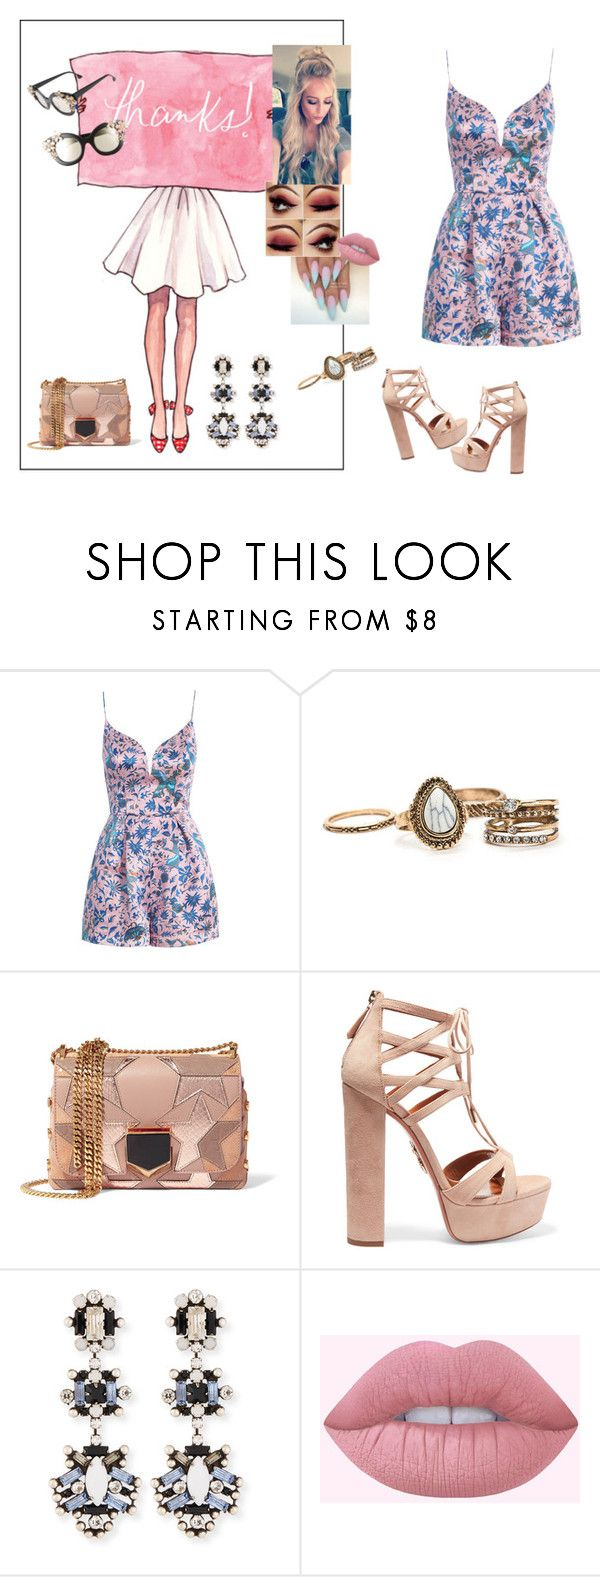 """Be The One #DuaLipa"" by diane-ds ❤ liked on Polyvore featuring Zimmermann, Jimmy Choo, Aquazzura, DANNIJO, Lime Crime and Alice + Olivia"